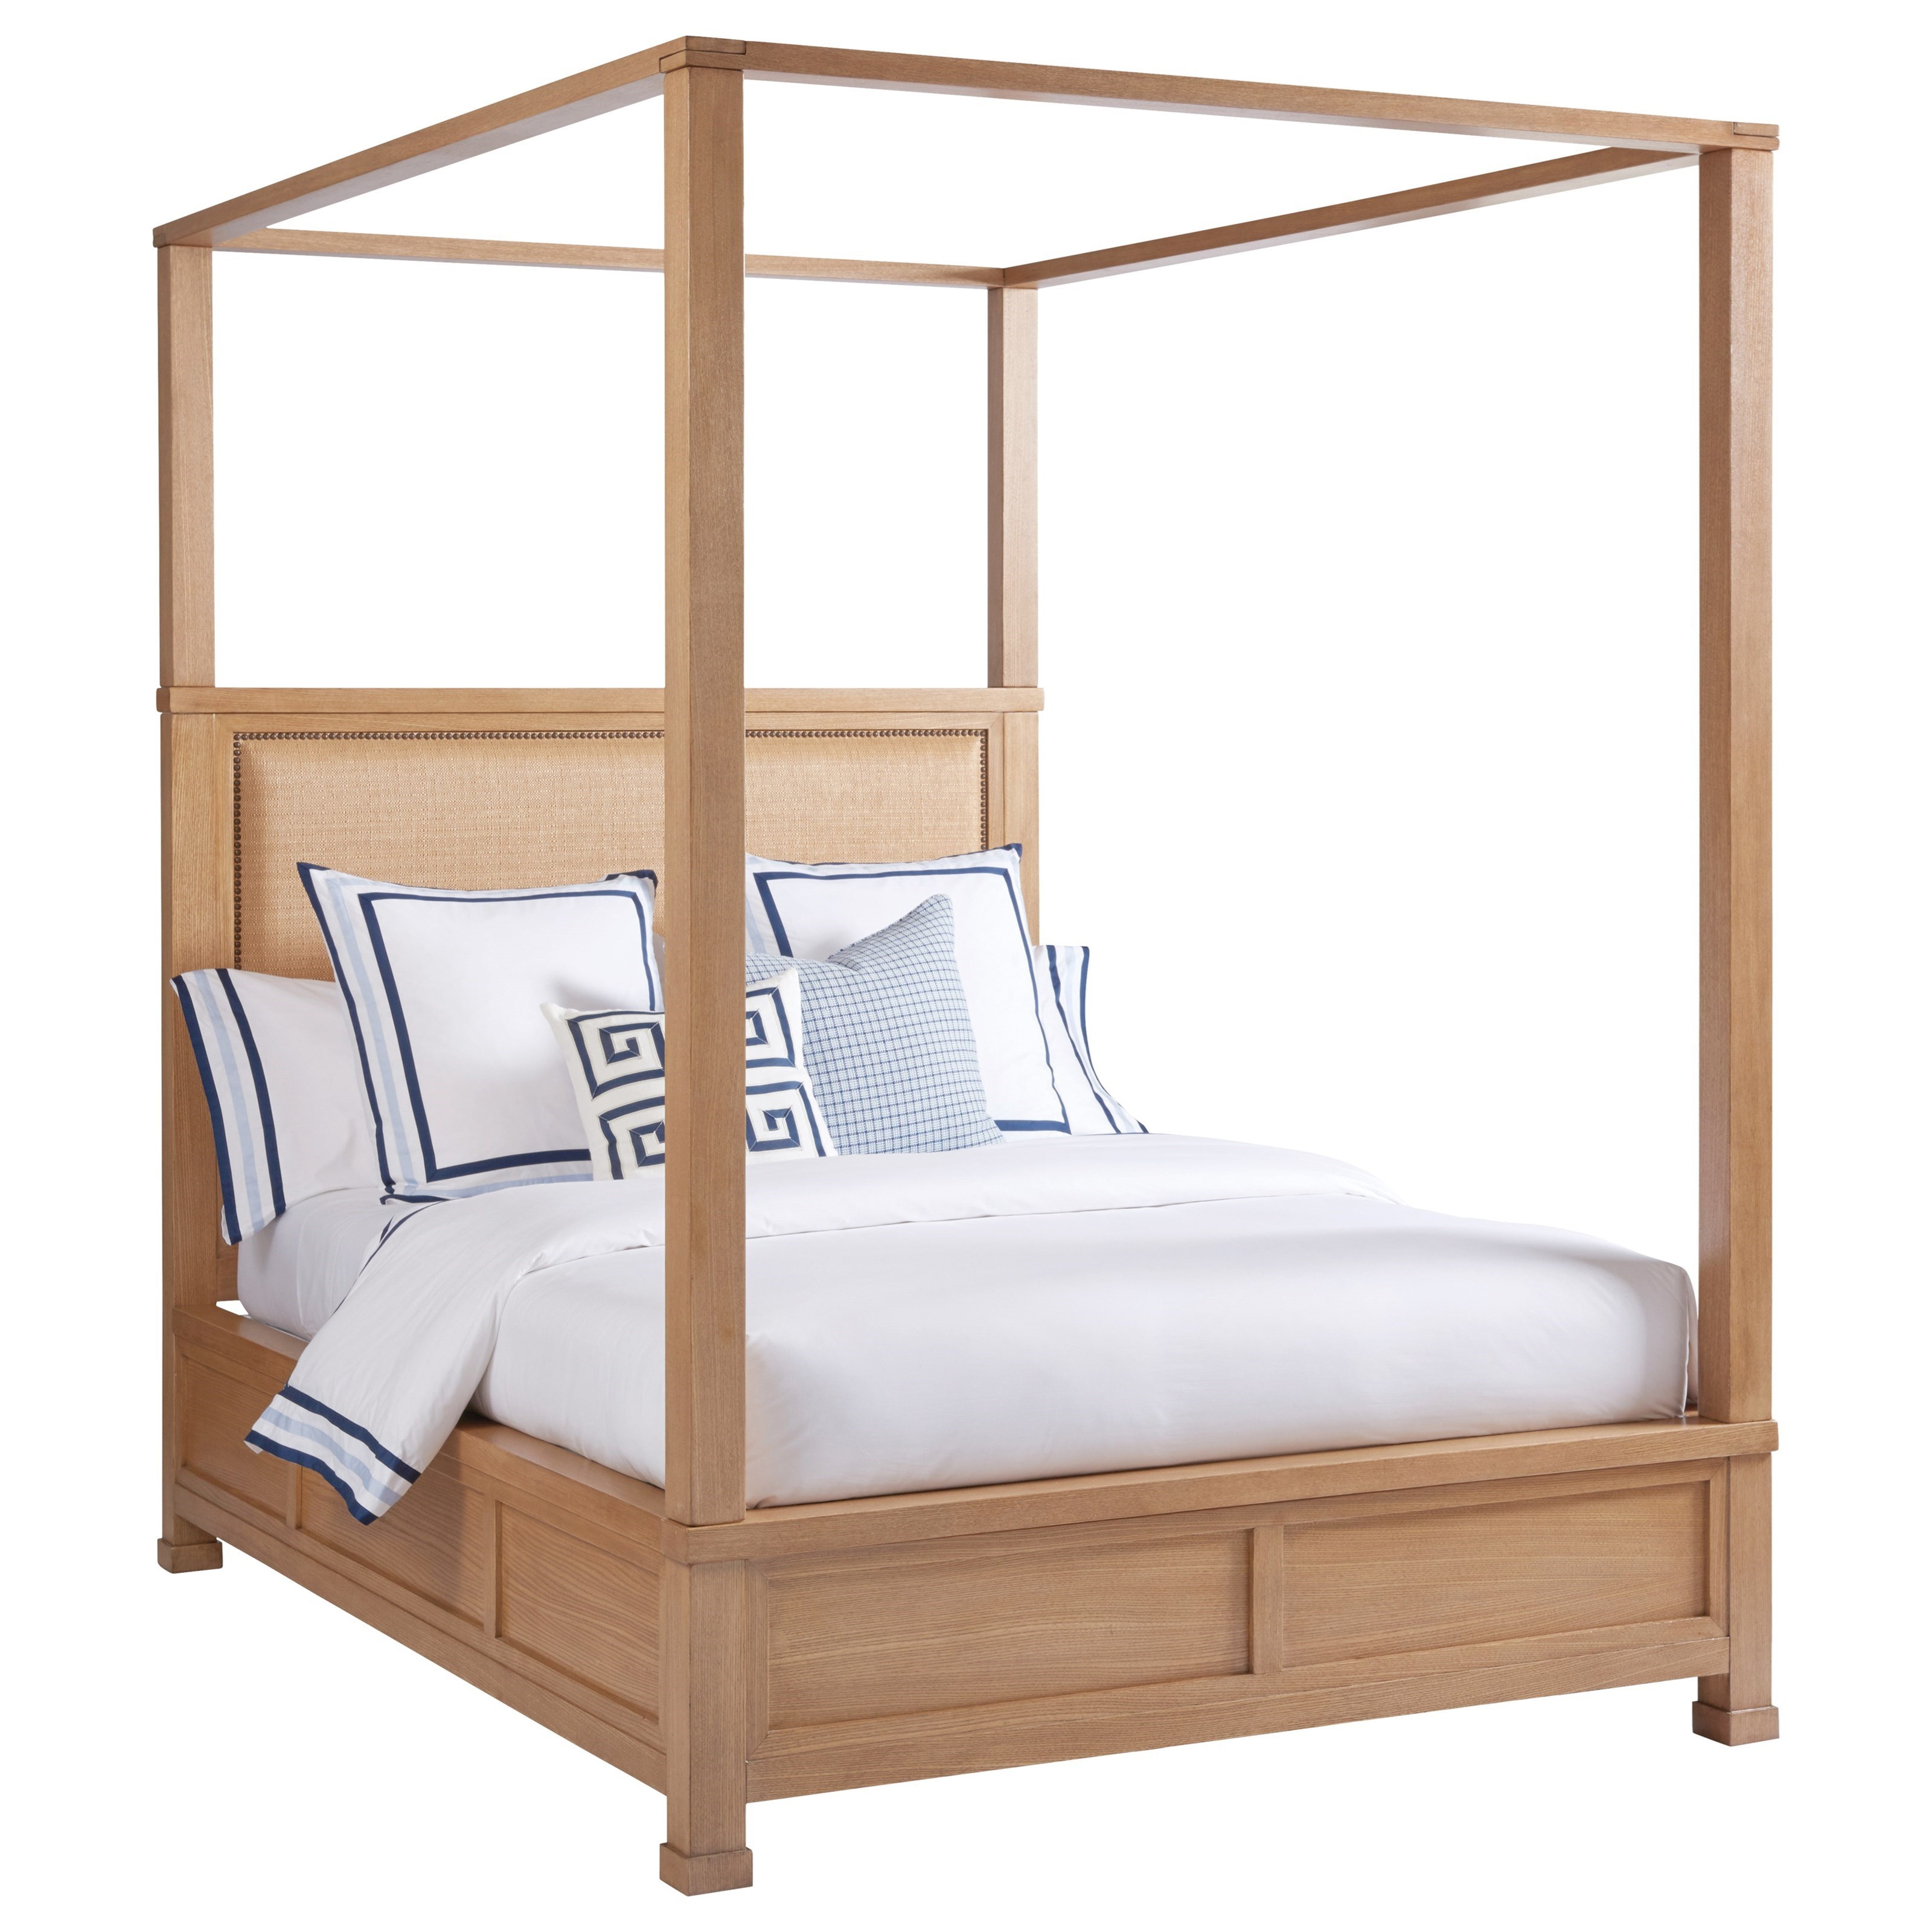 Picture of: Barclay Butera Newport Shorecliff California King Size Canopy Bed With Headboard Upholstered Belfort Furniture Canopy Beds